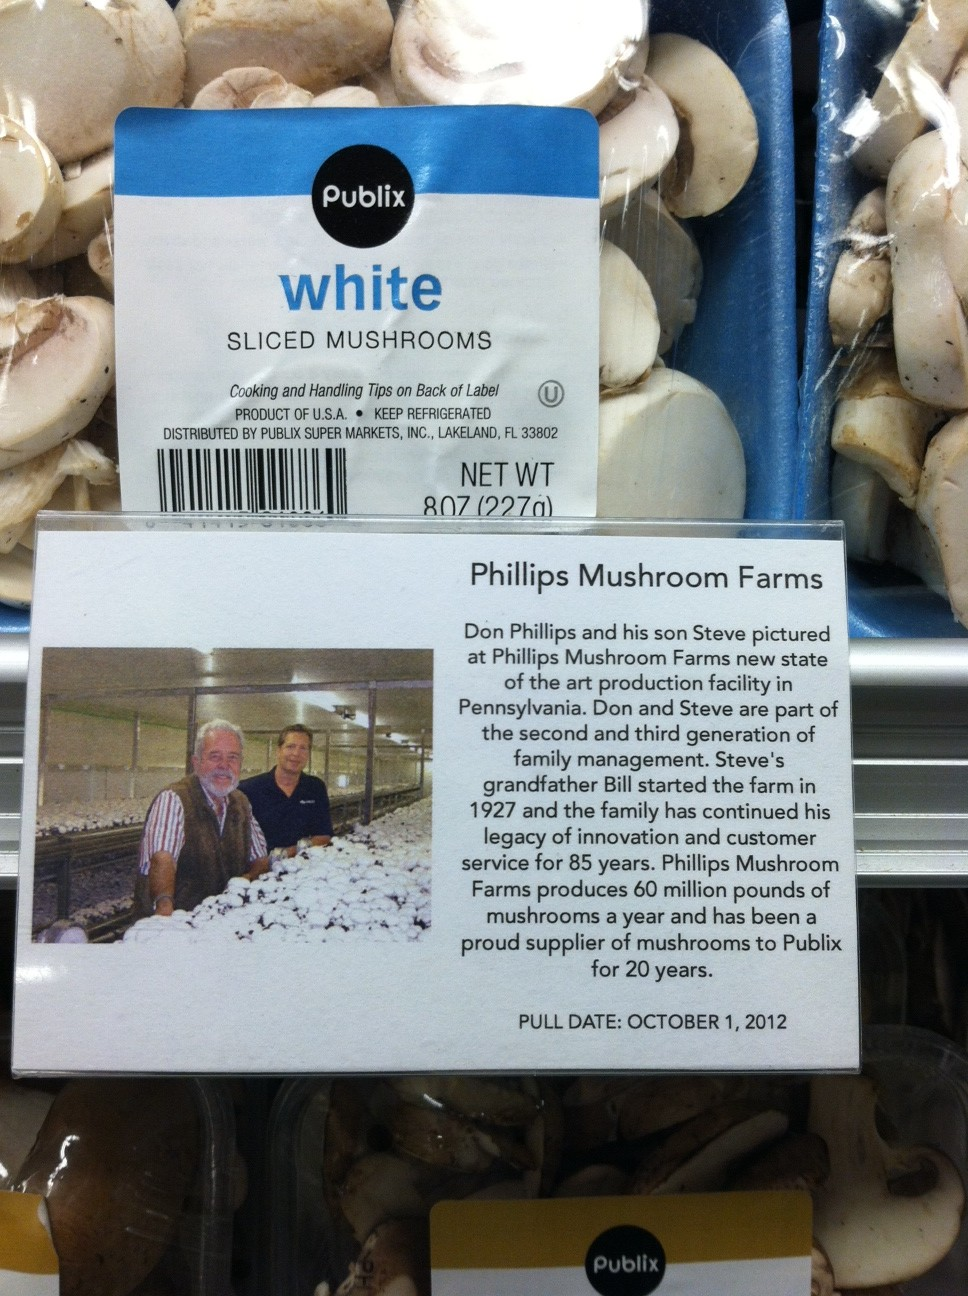 Publix Grocery Shelves Invite Consumers To Know Their